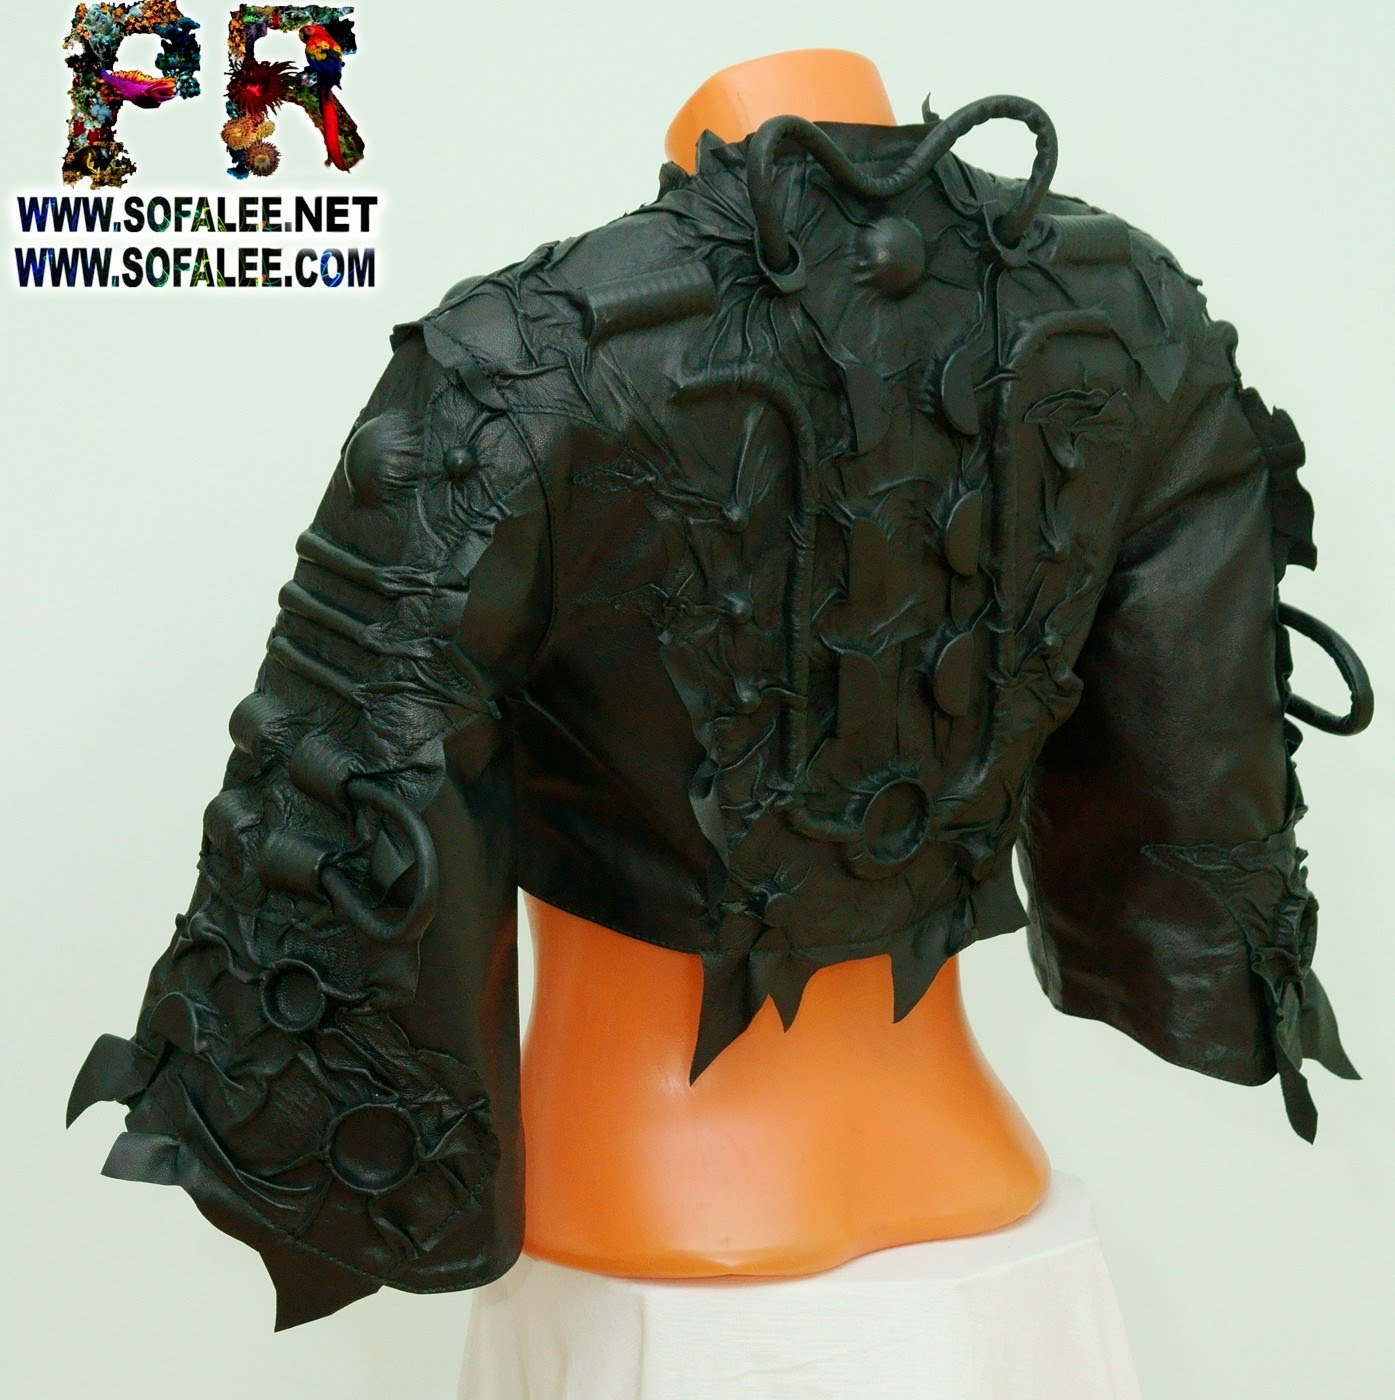 bolero corset genuine leather 0000